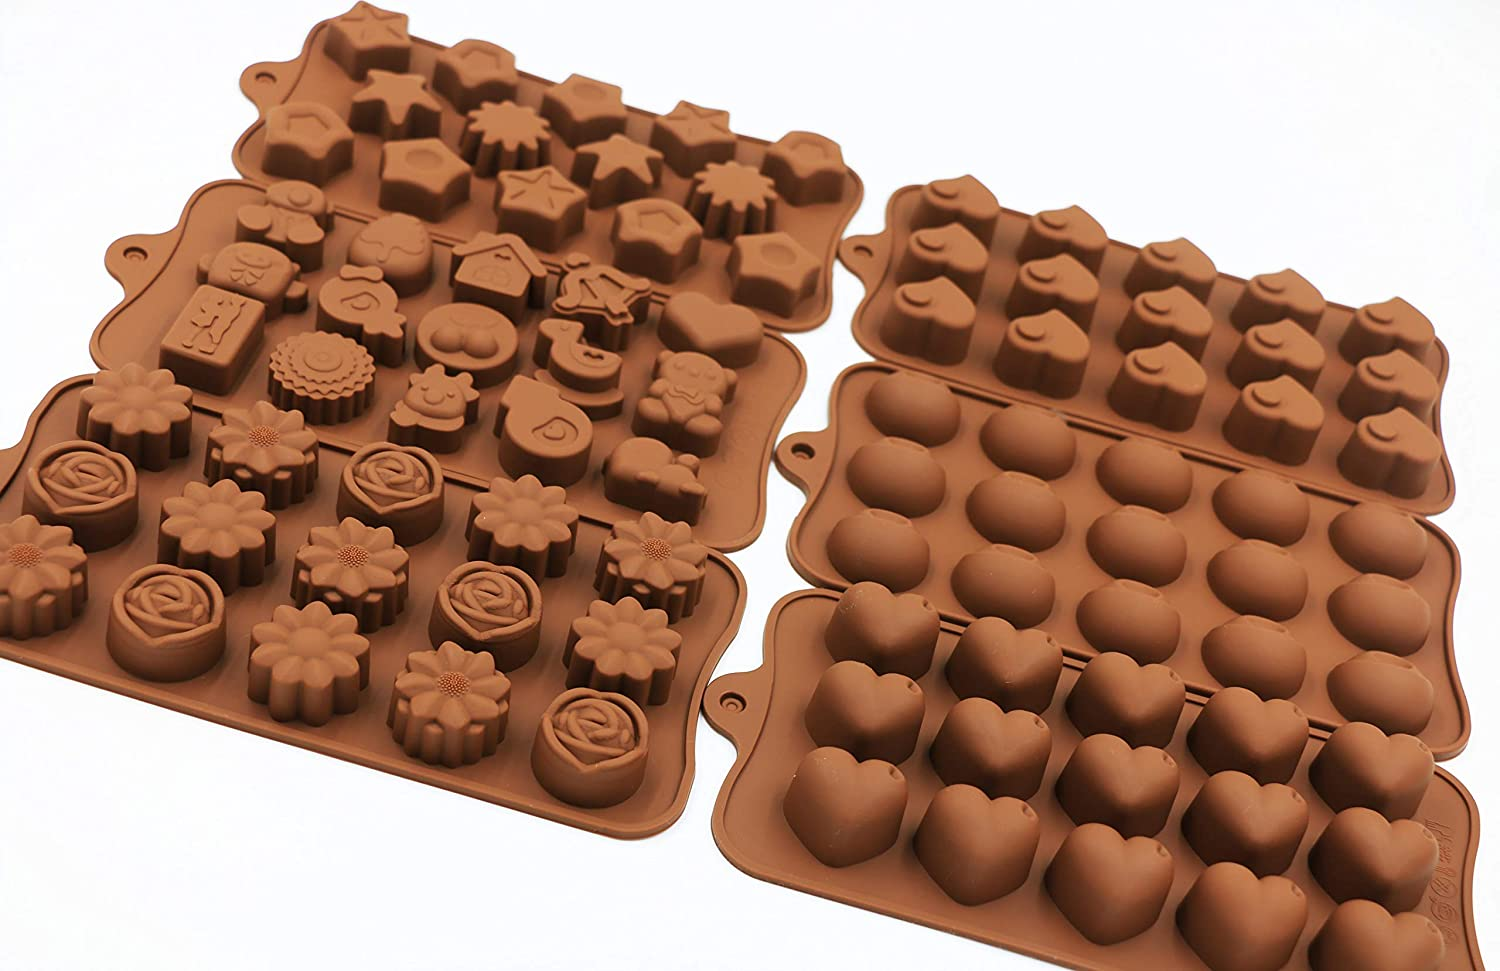 Amazon.com: PONECA Silicone Candy Molds Chocolate Molds 6 Pack Silicone Molds For Fat Bombs Chocolate Molds Silicon Molds Candy Mold Silicon Mold Hard Candy ...